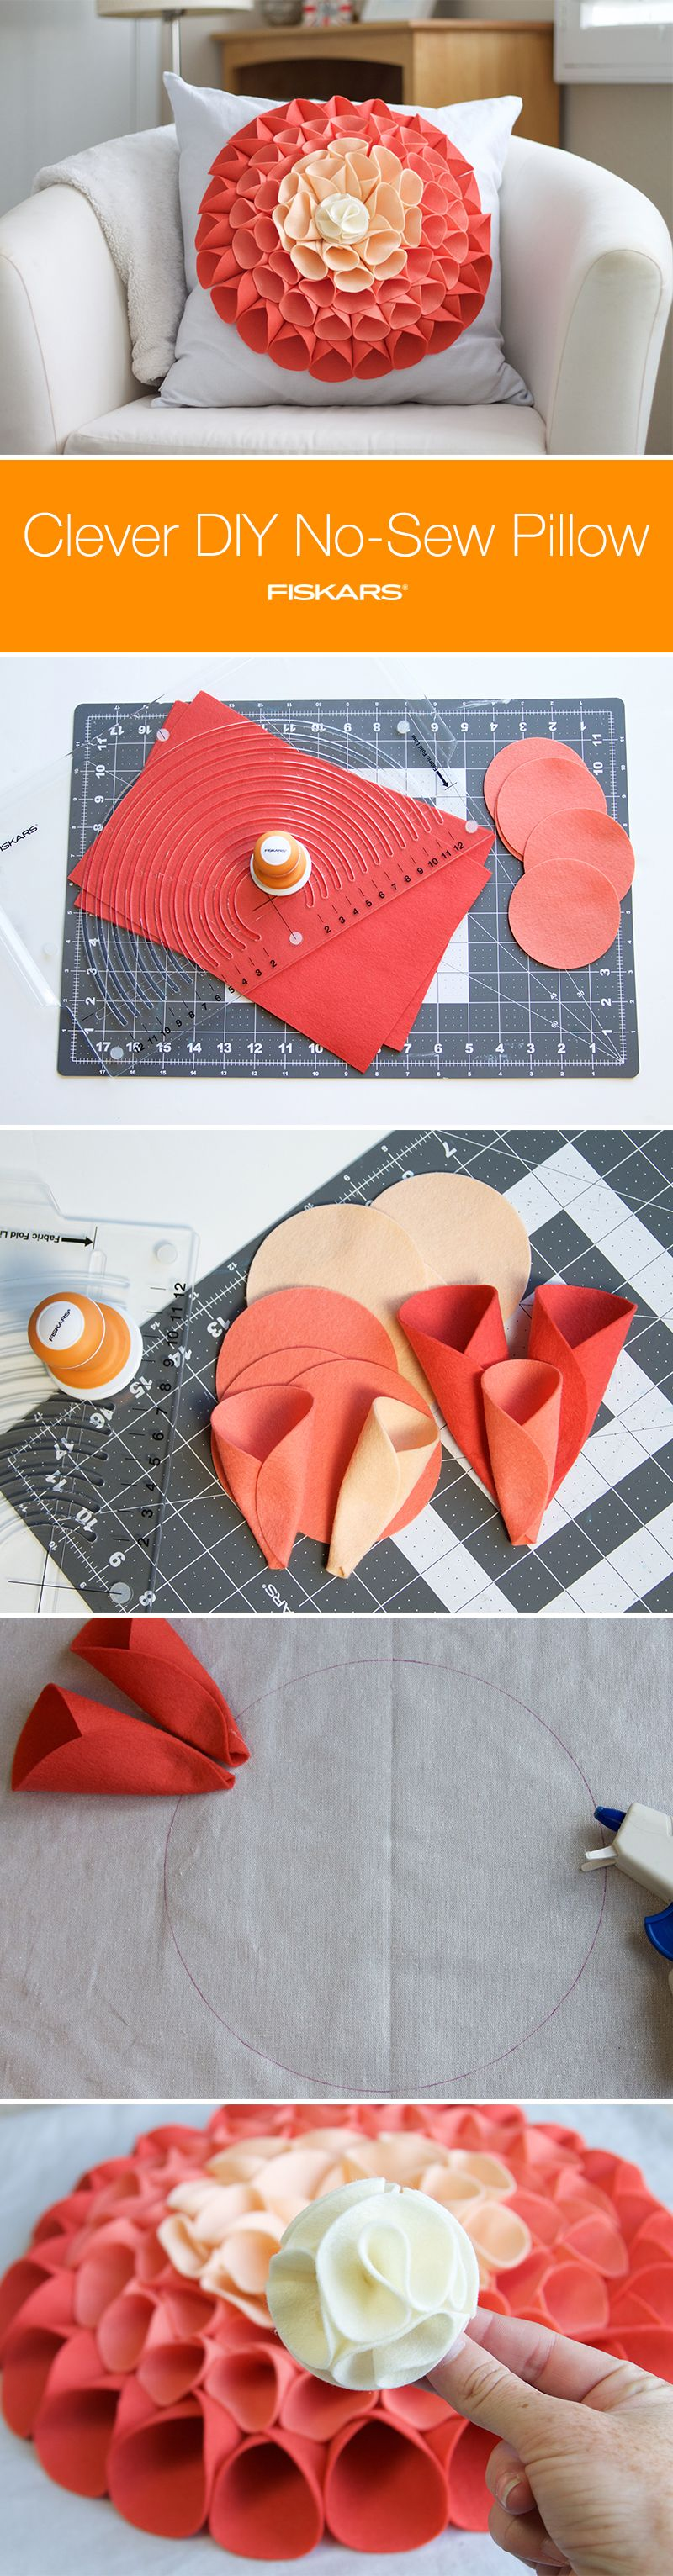 diy no sew pillows how to make no sew pillows perfect diy